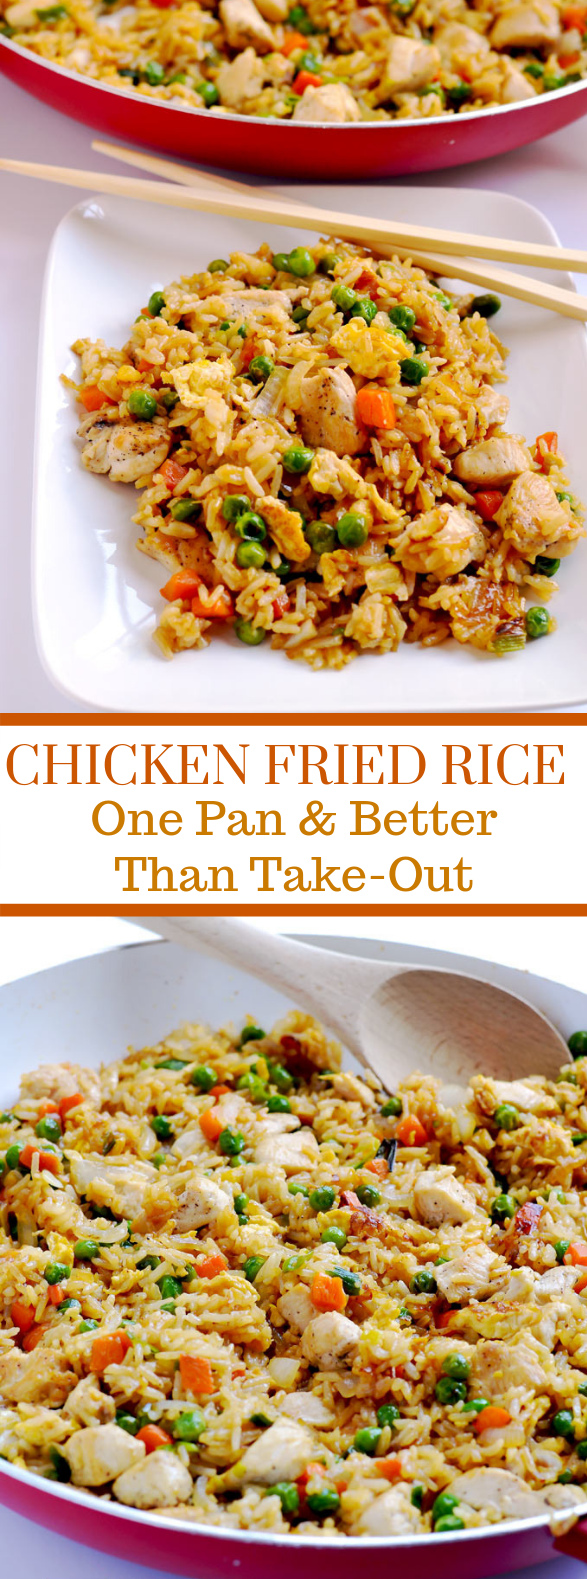 Chicken Fried Rice {better than take-out!} #dinner #weeknight